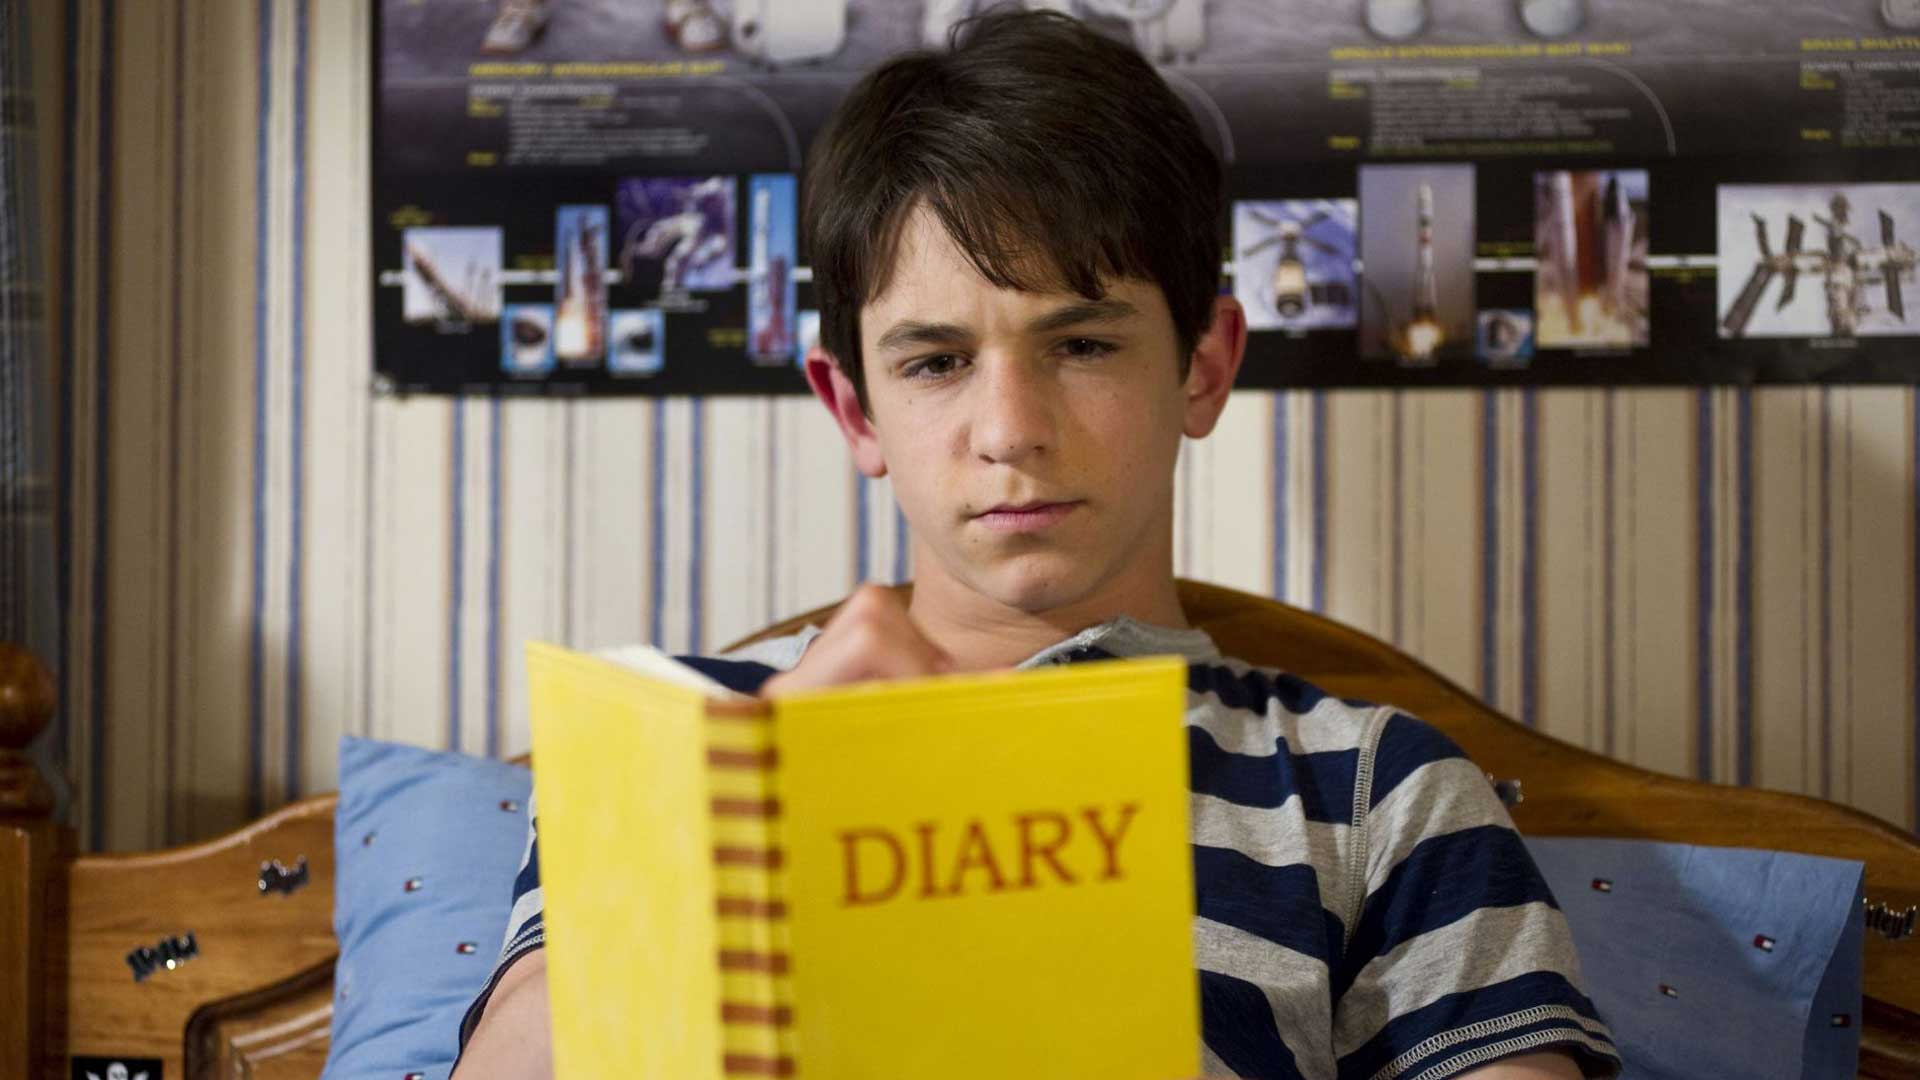 Diary of a Wimpy Kid 3 - Dog Days - Diario di una Schiappa 3 - Vita da Cani - Yellow Diary